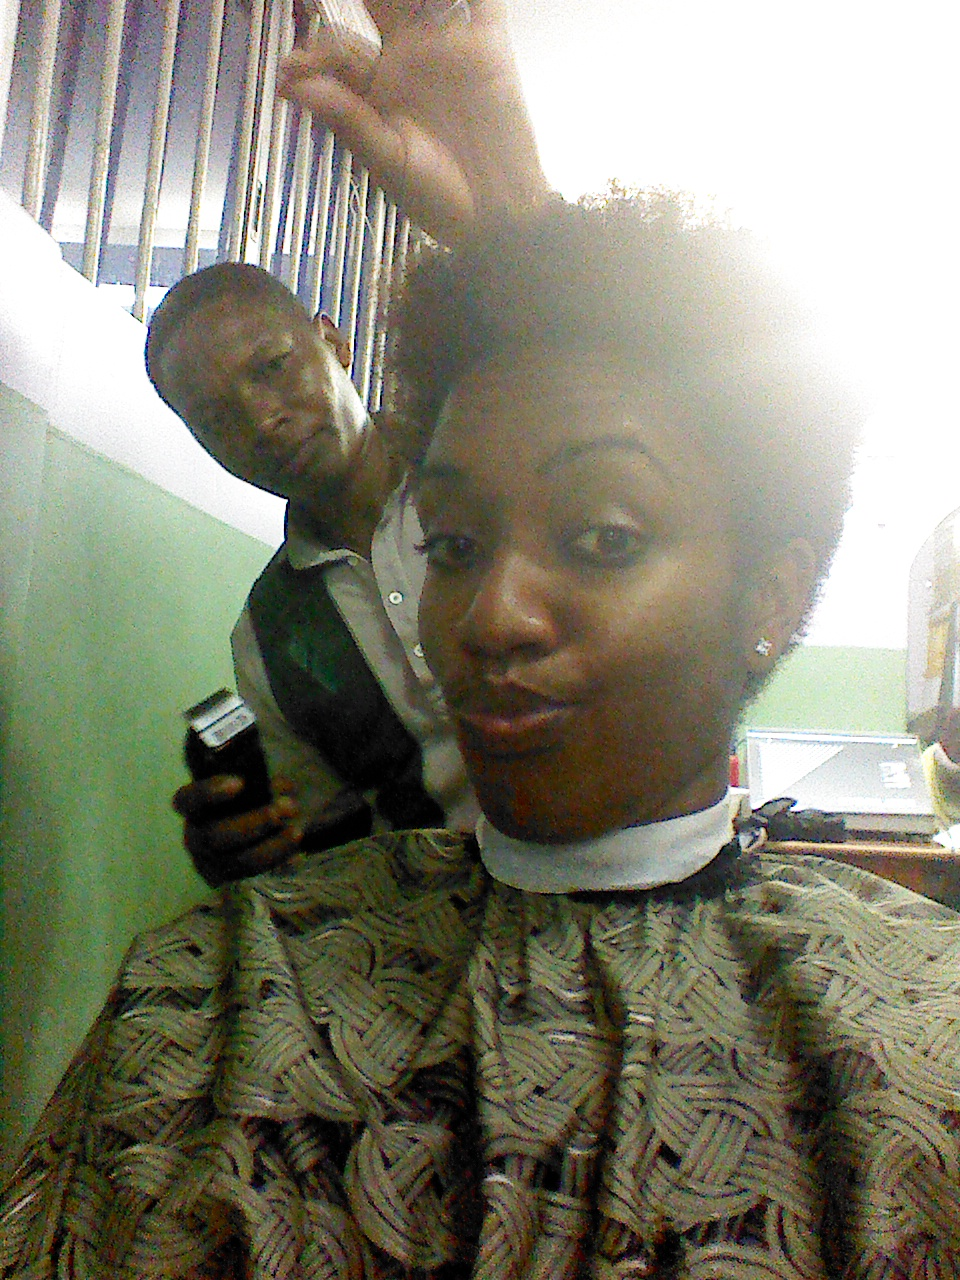 At the barber's :-)